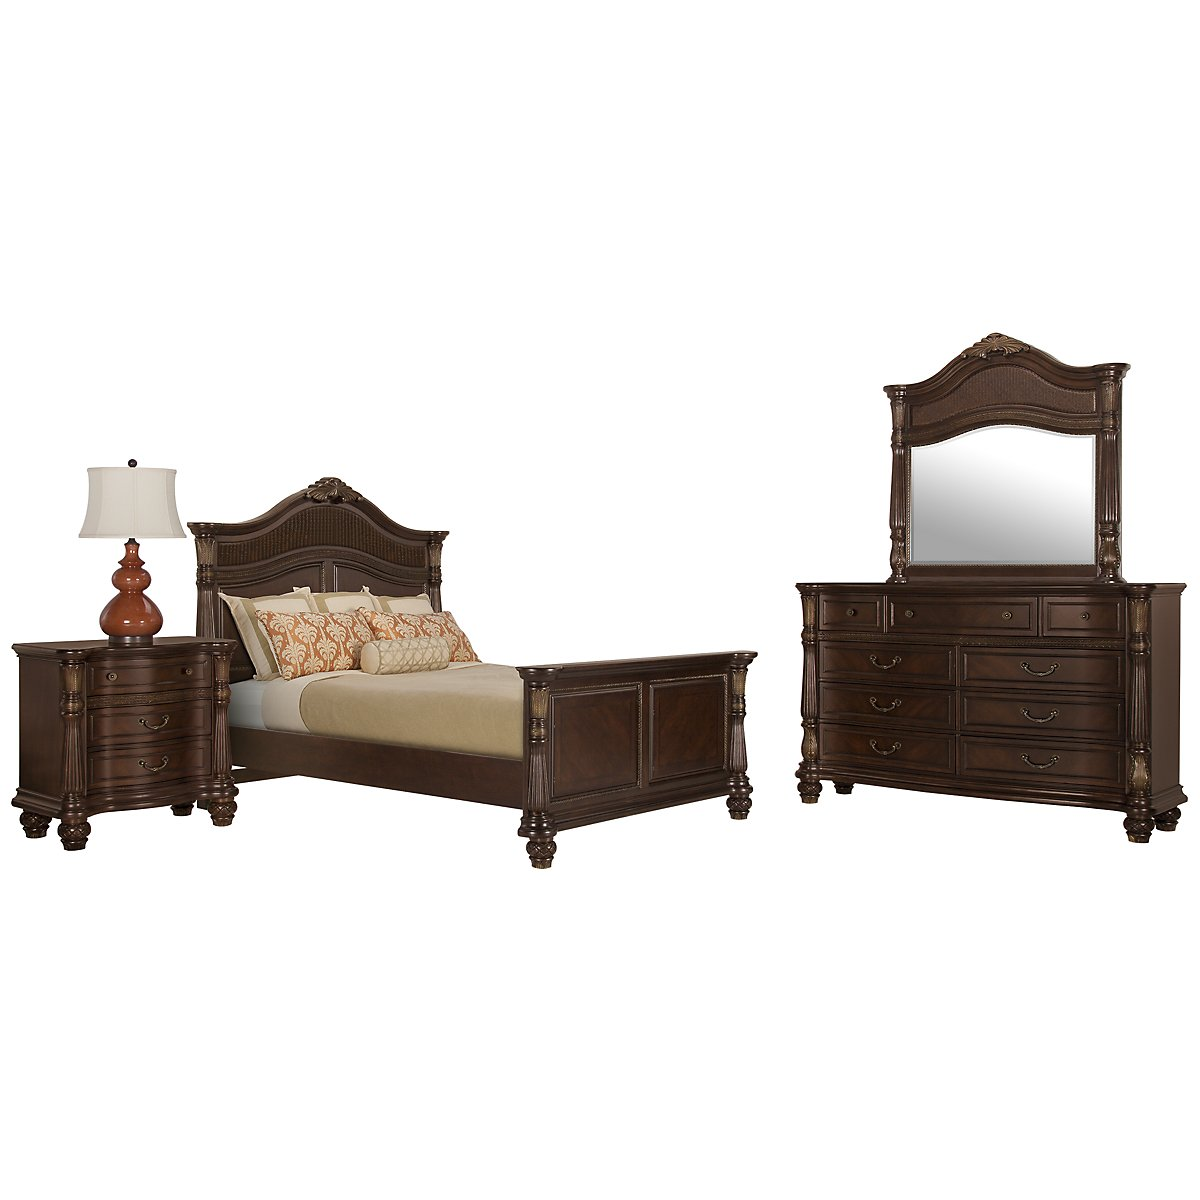 Tradewinds Dark Tone Woven Mansion Bedroom